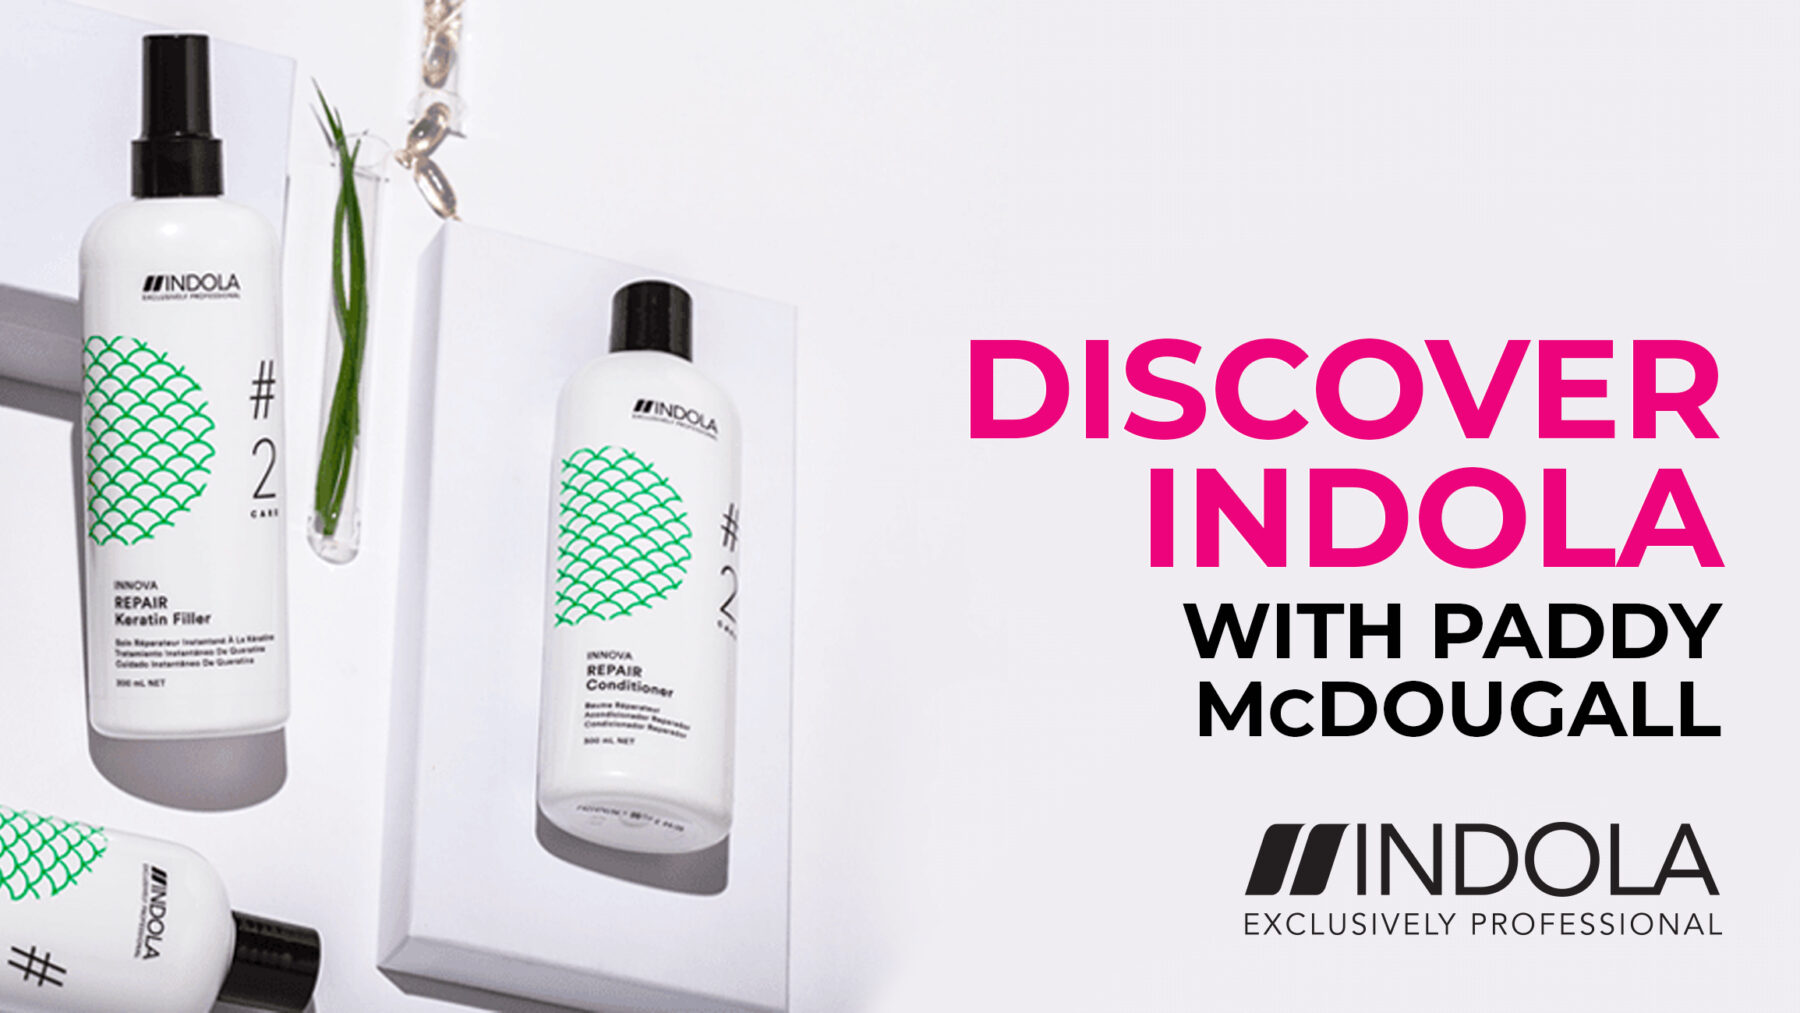 Discover Indola with Paddy McDougall